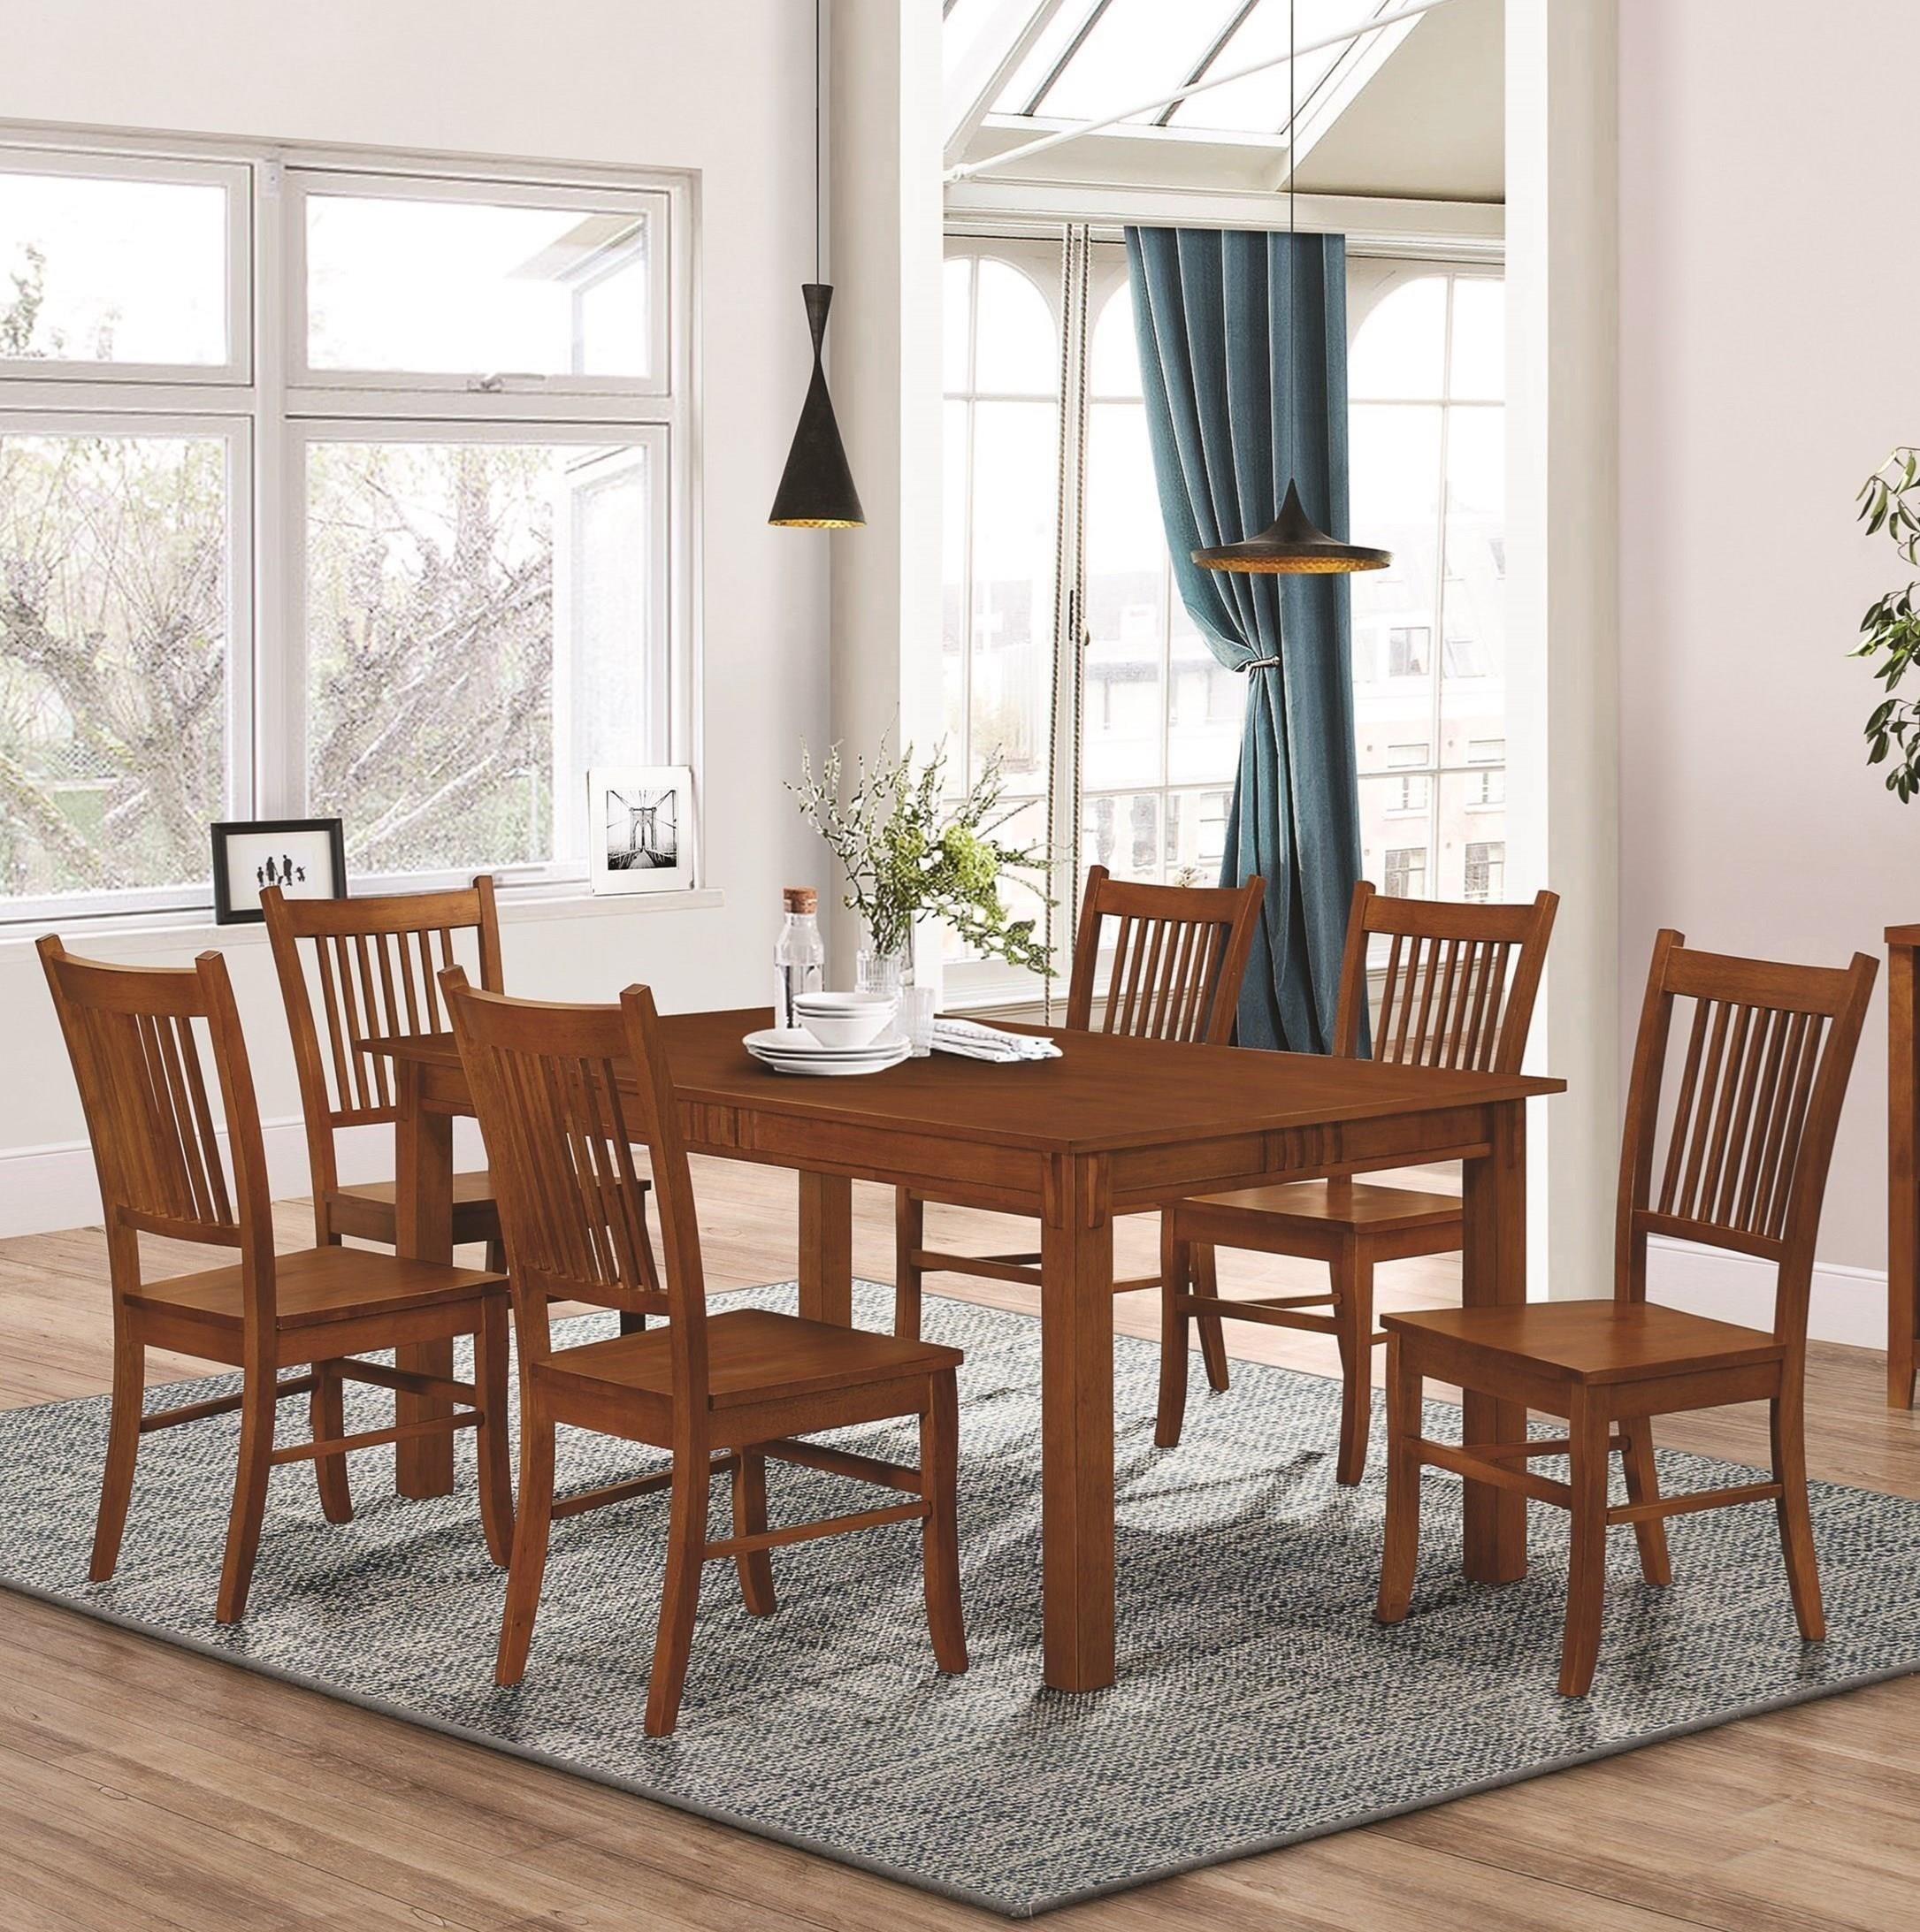 Coaster Marbrisa Mission Style 7 Piece Dining Set | Dunk U0026 Bright Furniture  | Dining 7 (or More) Piece Sets